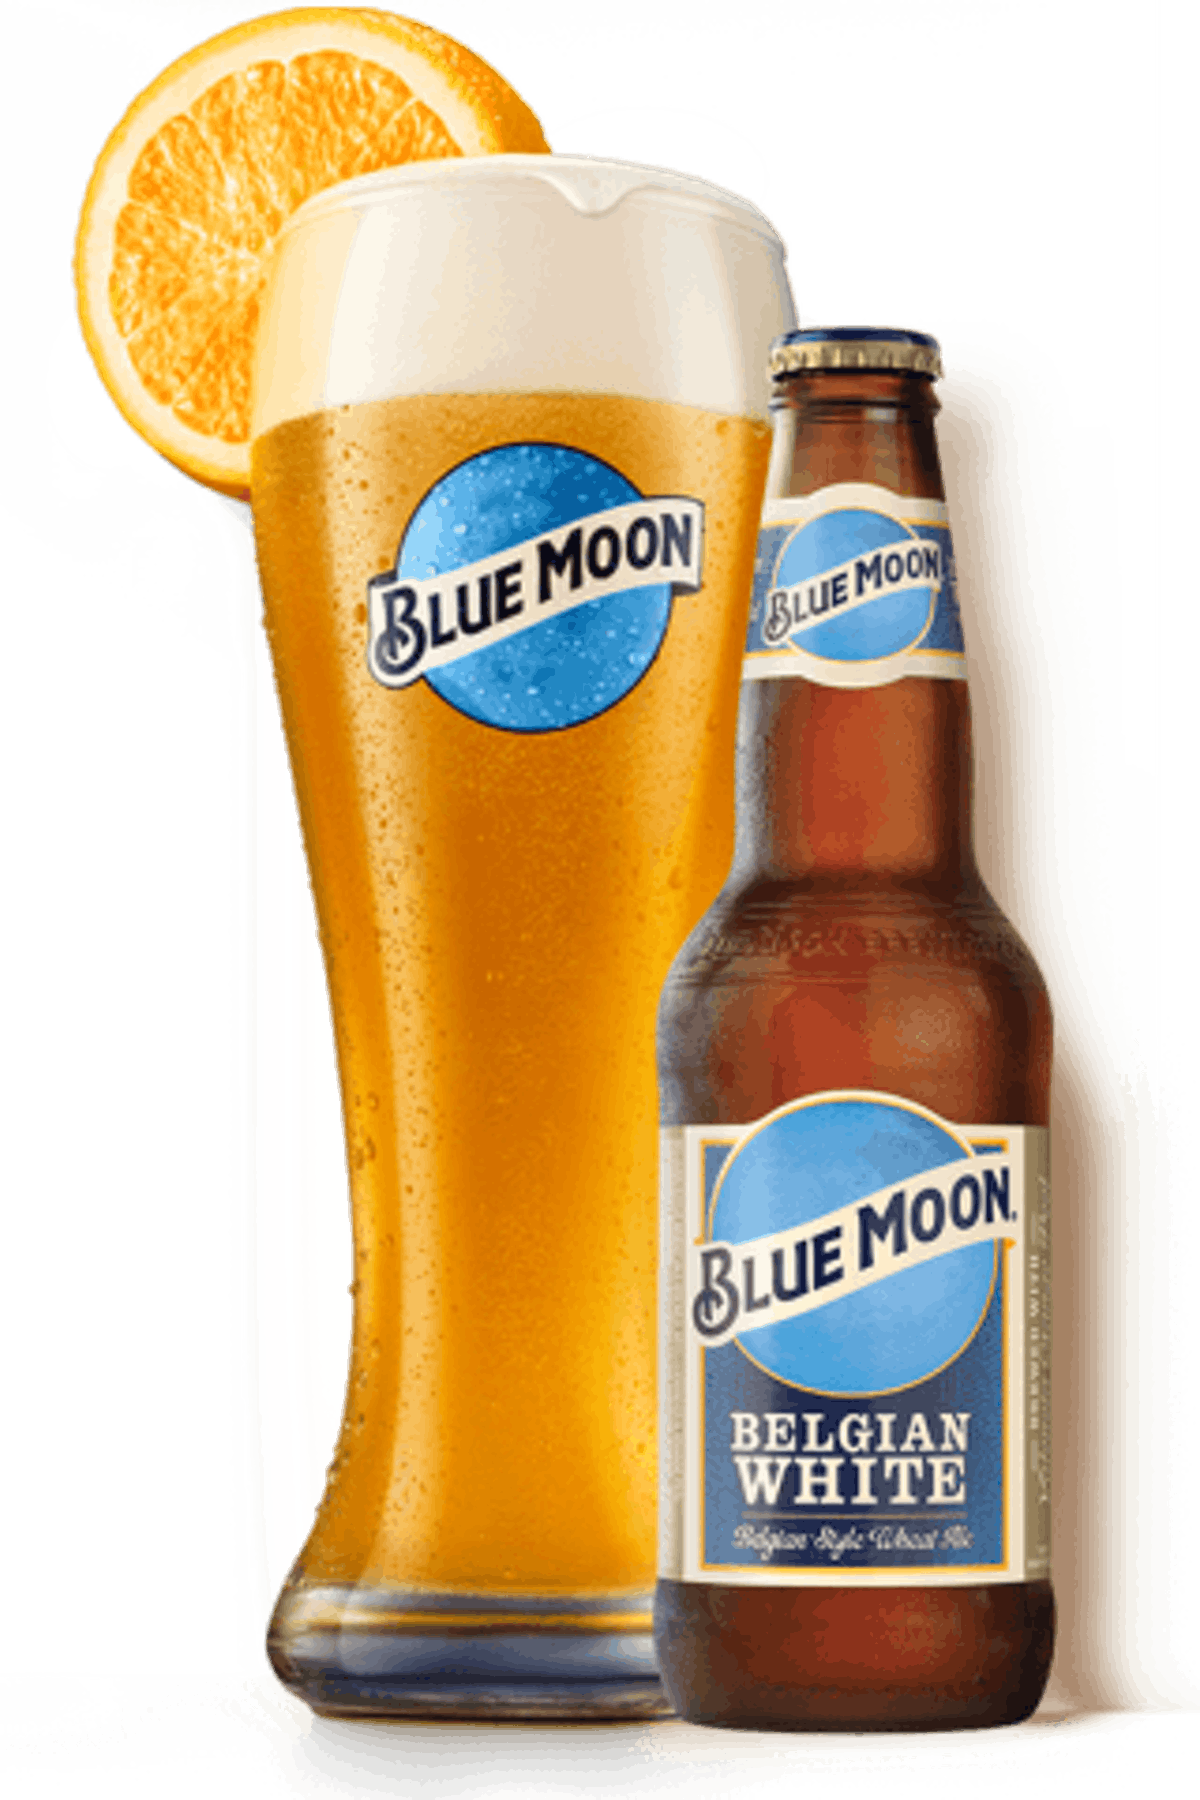 Here's how to enter Blue Moon's tree farm sweepstakes before it ends on Memorial Day.